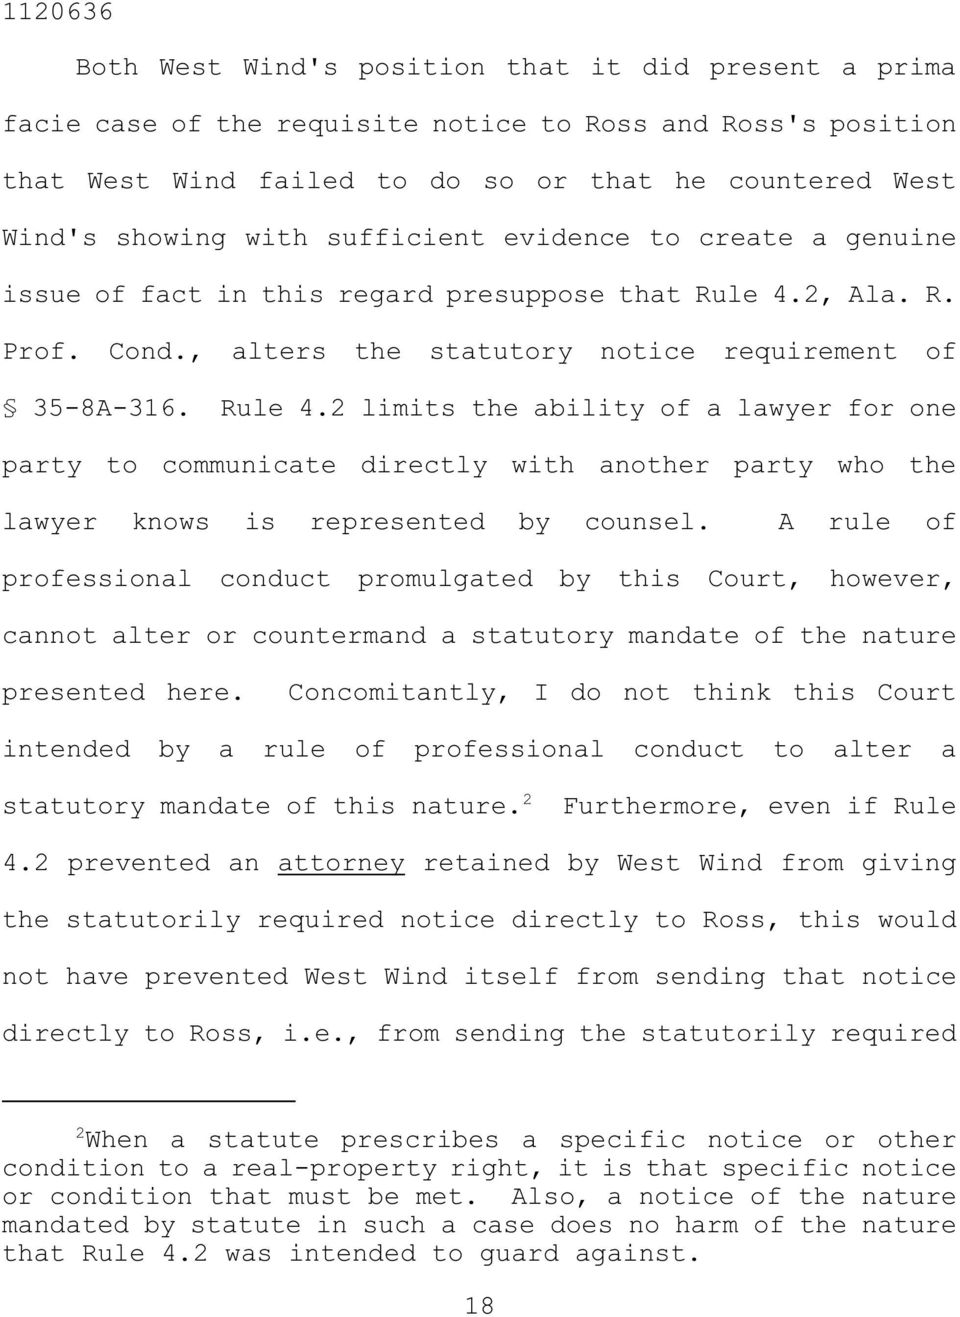 2, Ala. R. Prof. Cond., alters the statutory notice requirement of 35-8A-316. Rule 4.